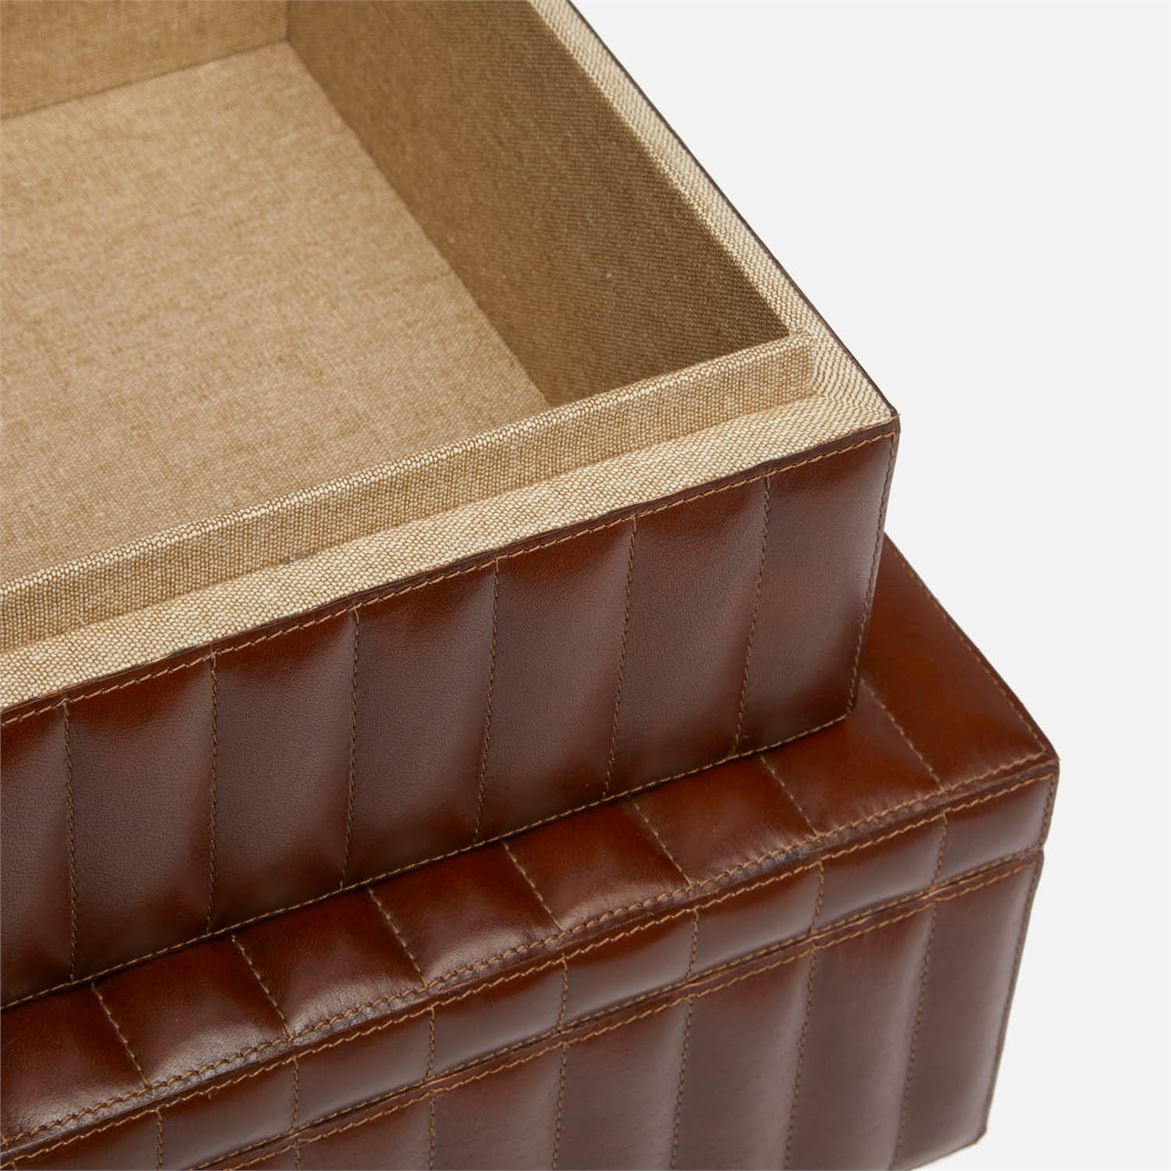 Holice Quilted Leather Boxes Set